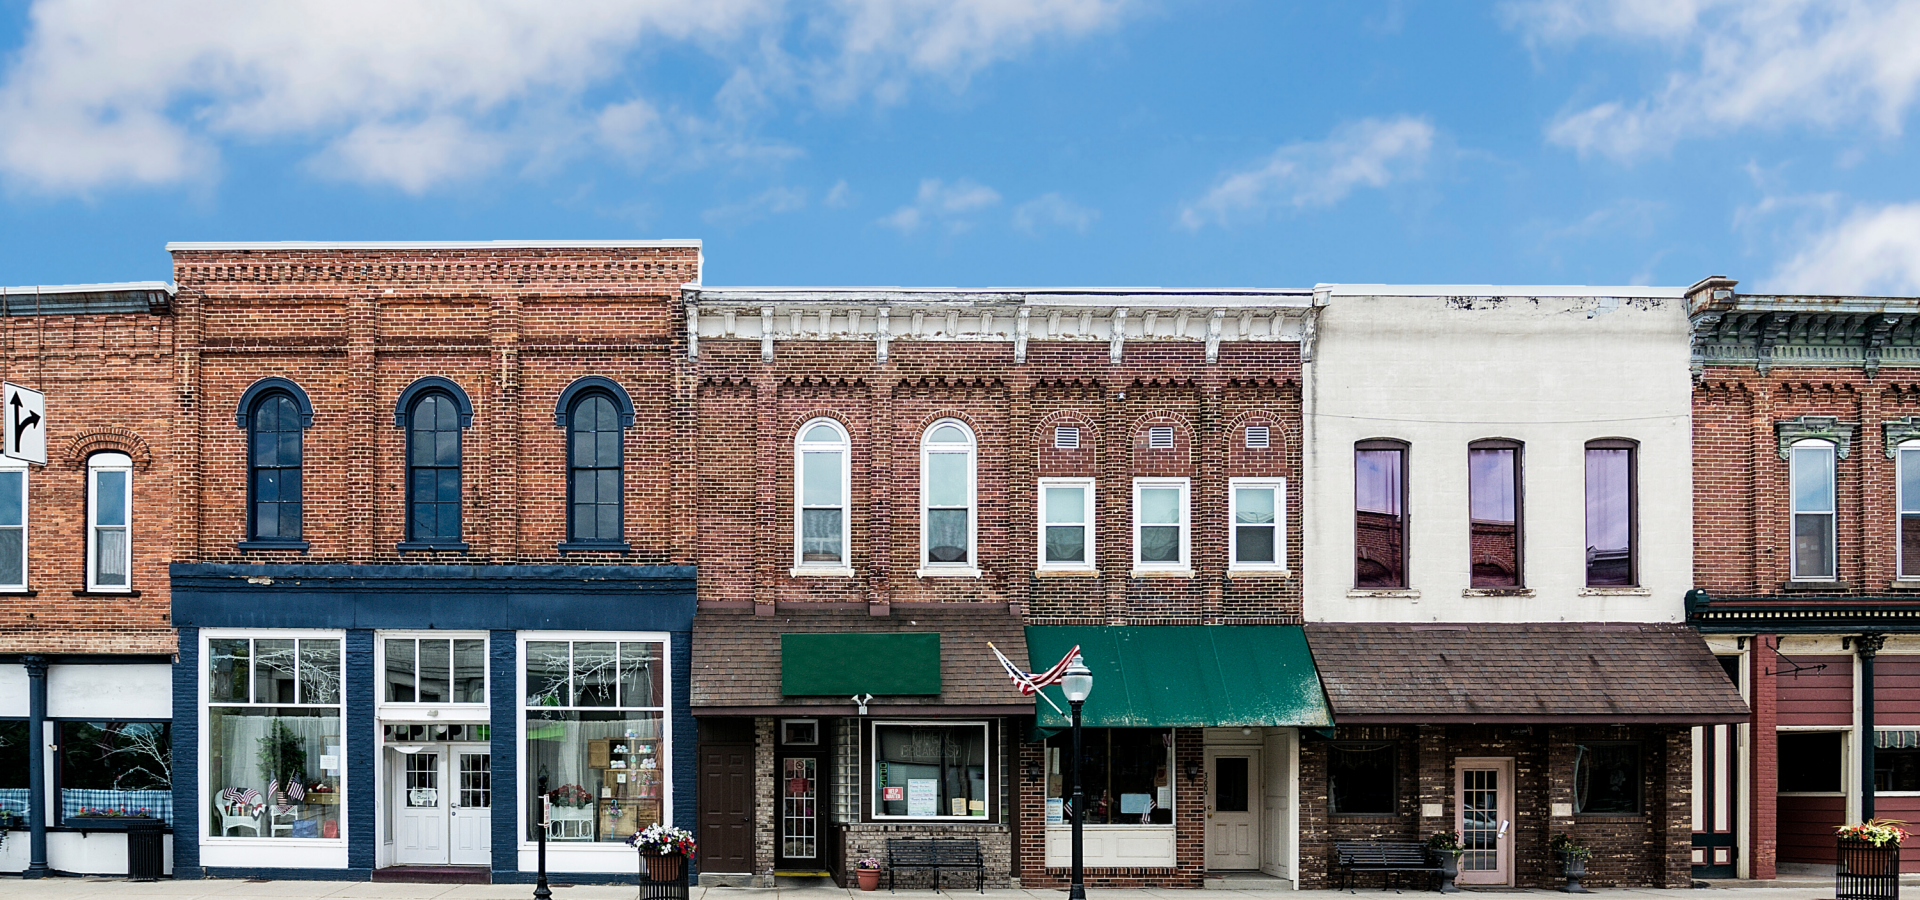 Brick storefronts line a main street in a small town.